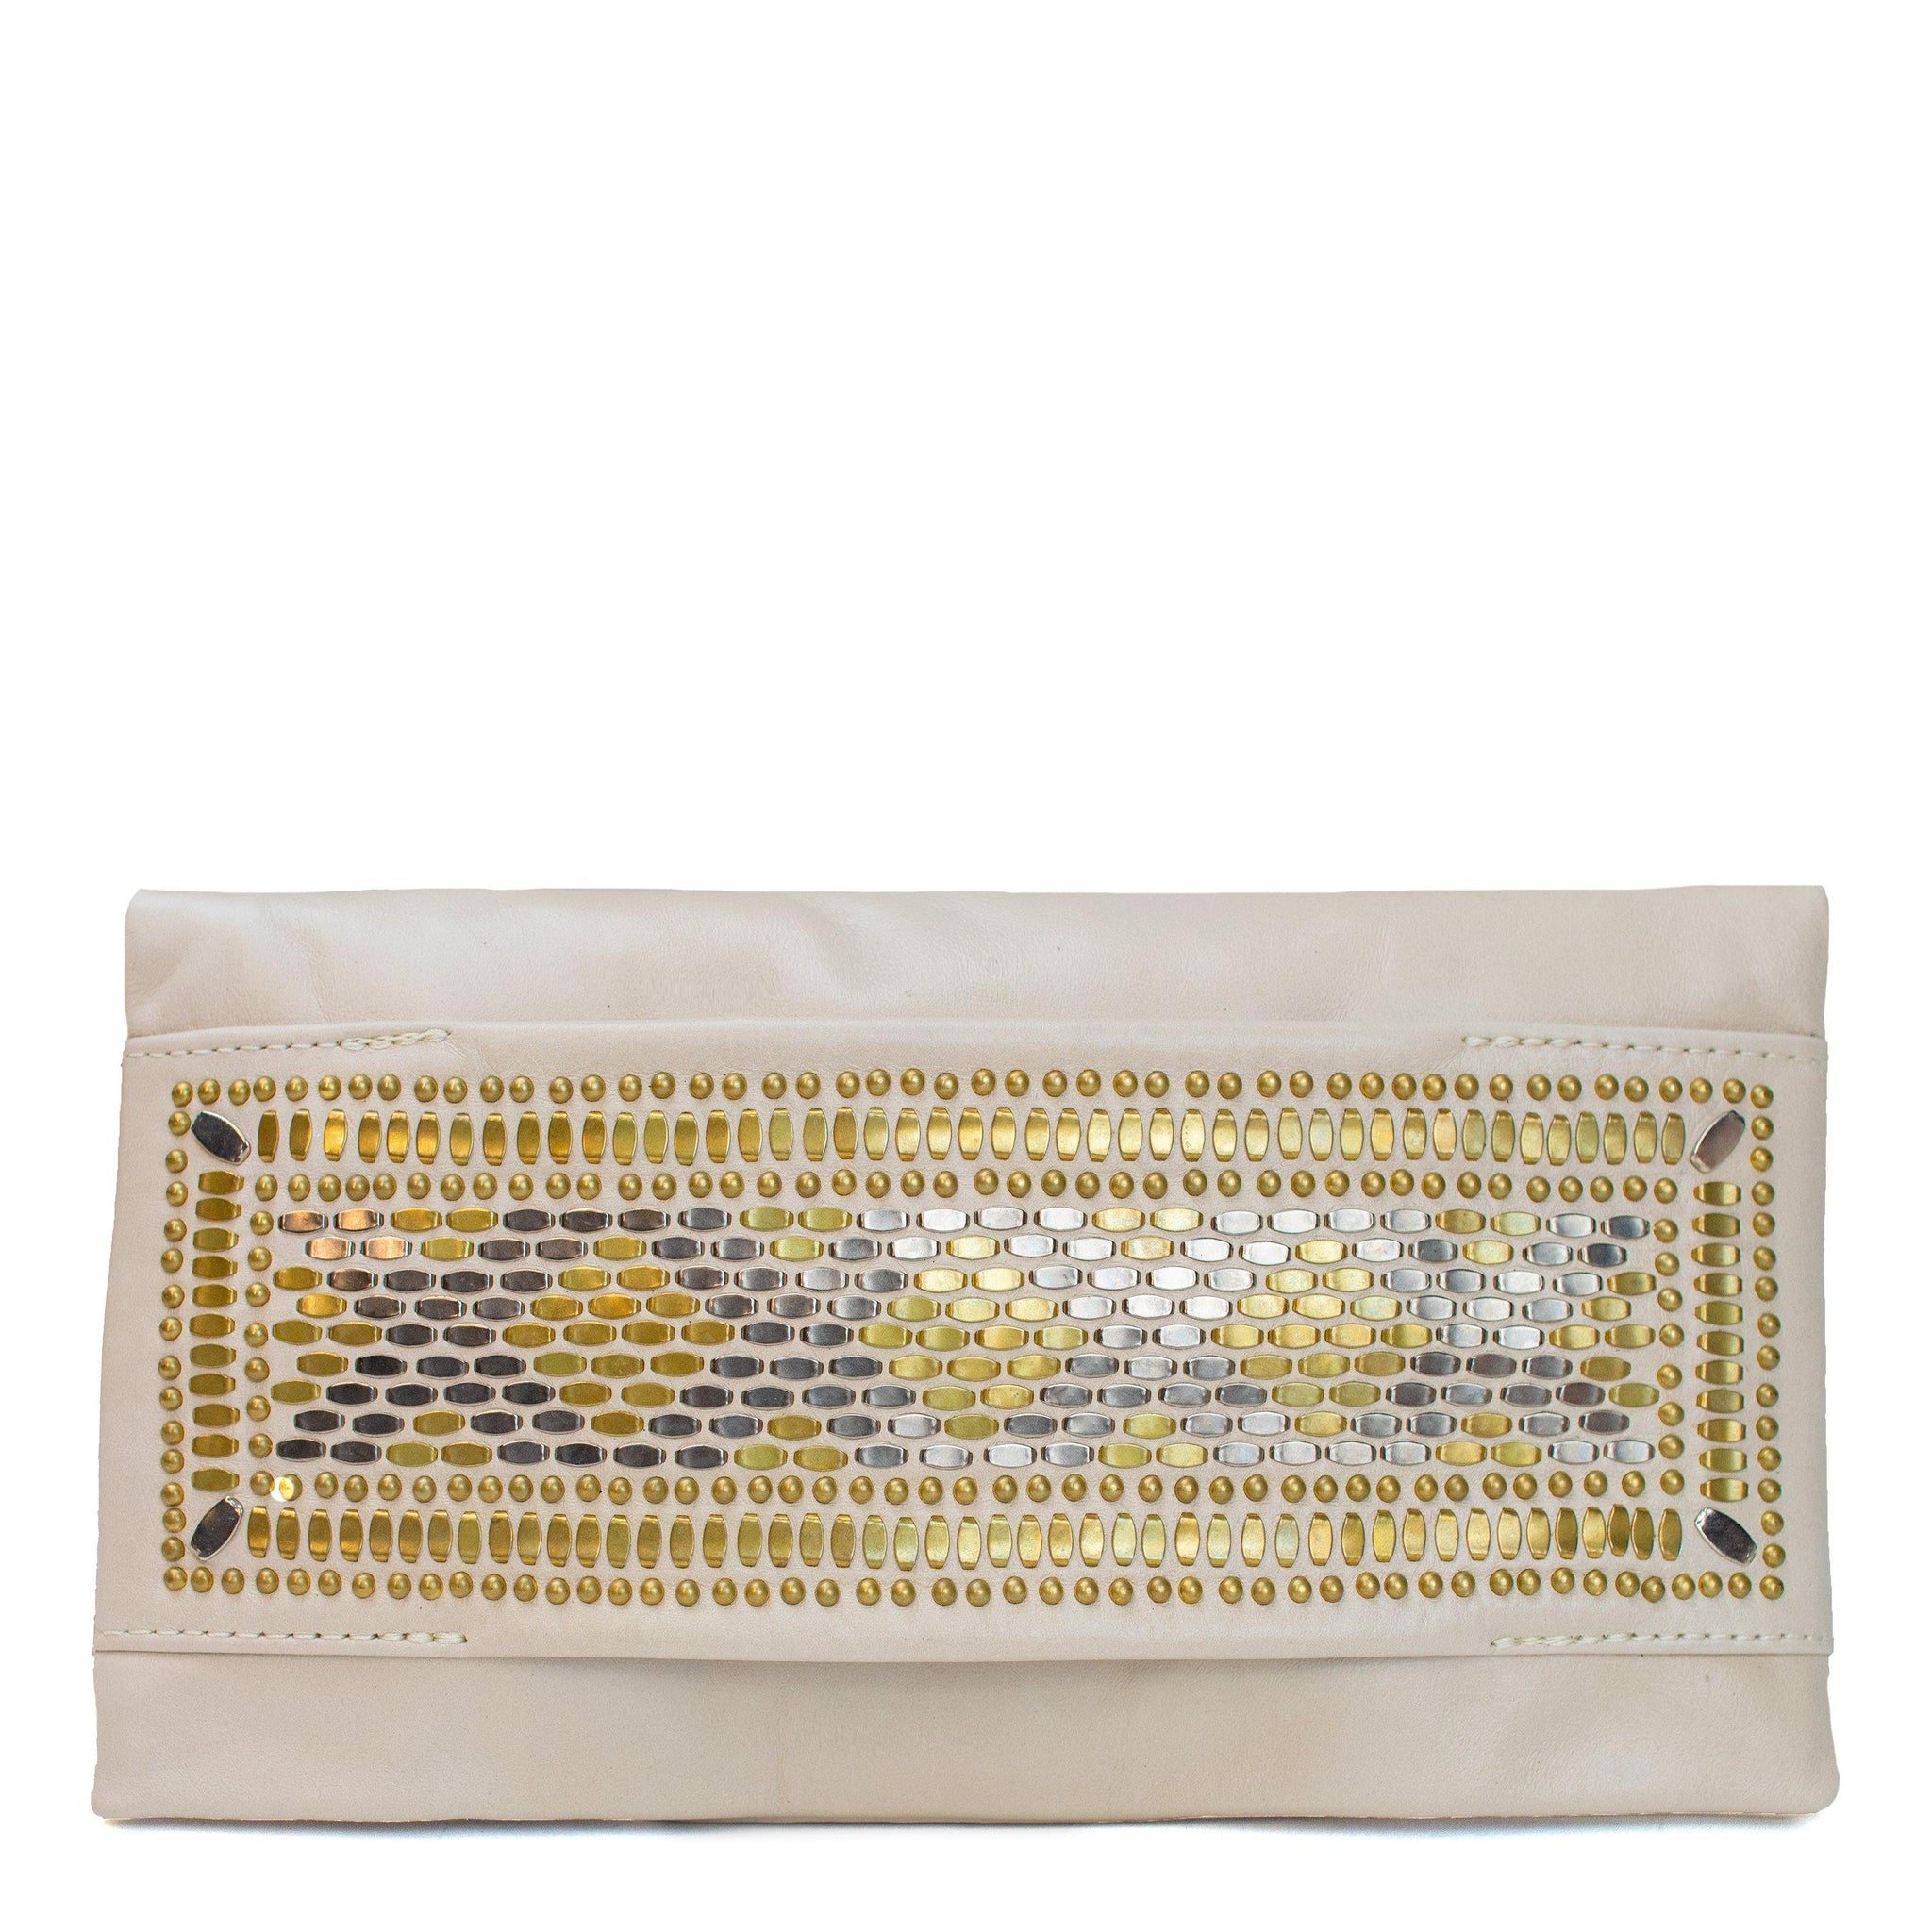 handmade white leather clutch handbag for women with brass and nickel studs artwork - Calleen Cordero Designs